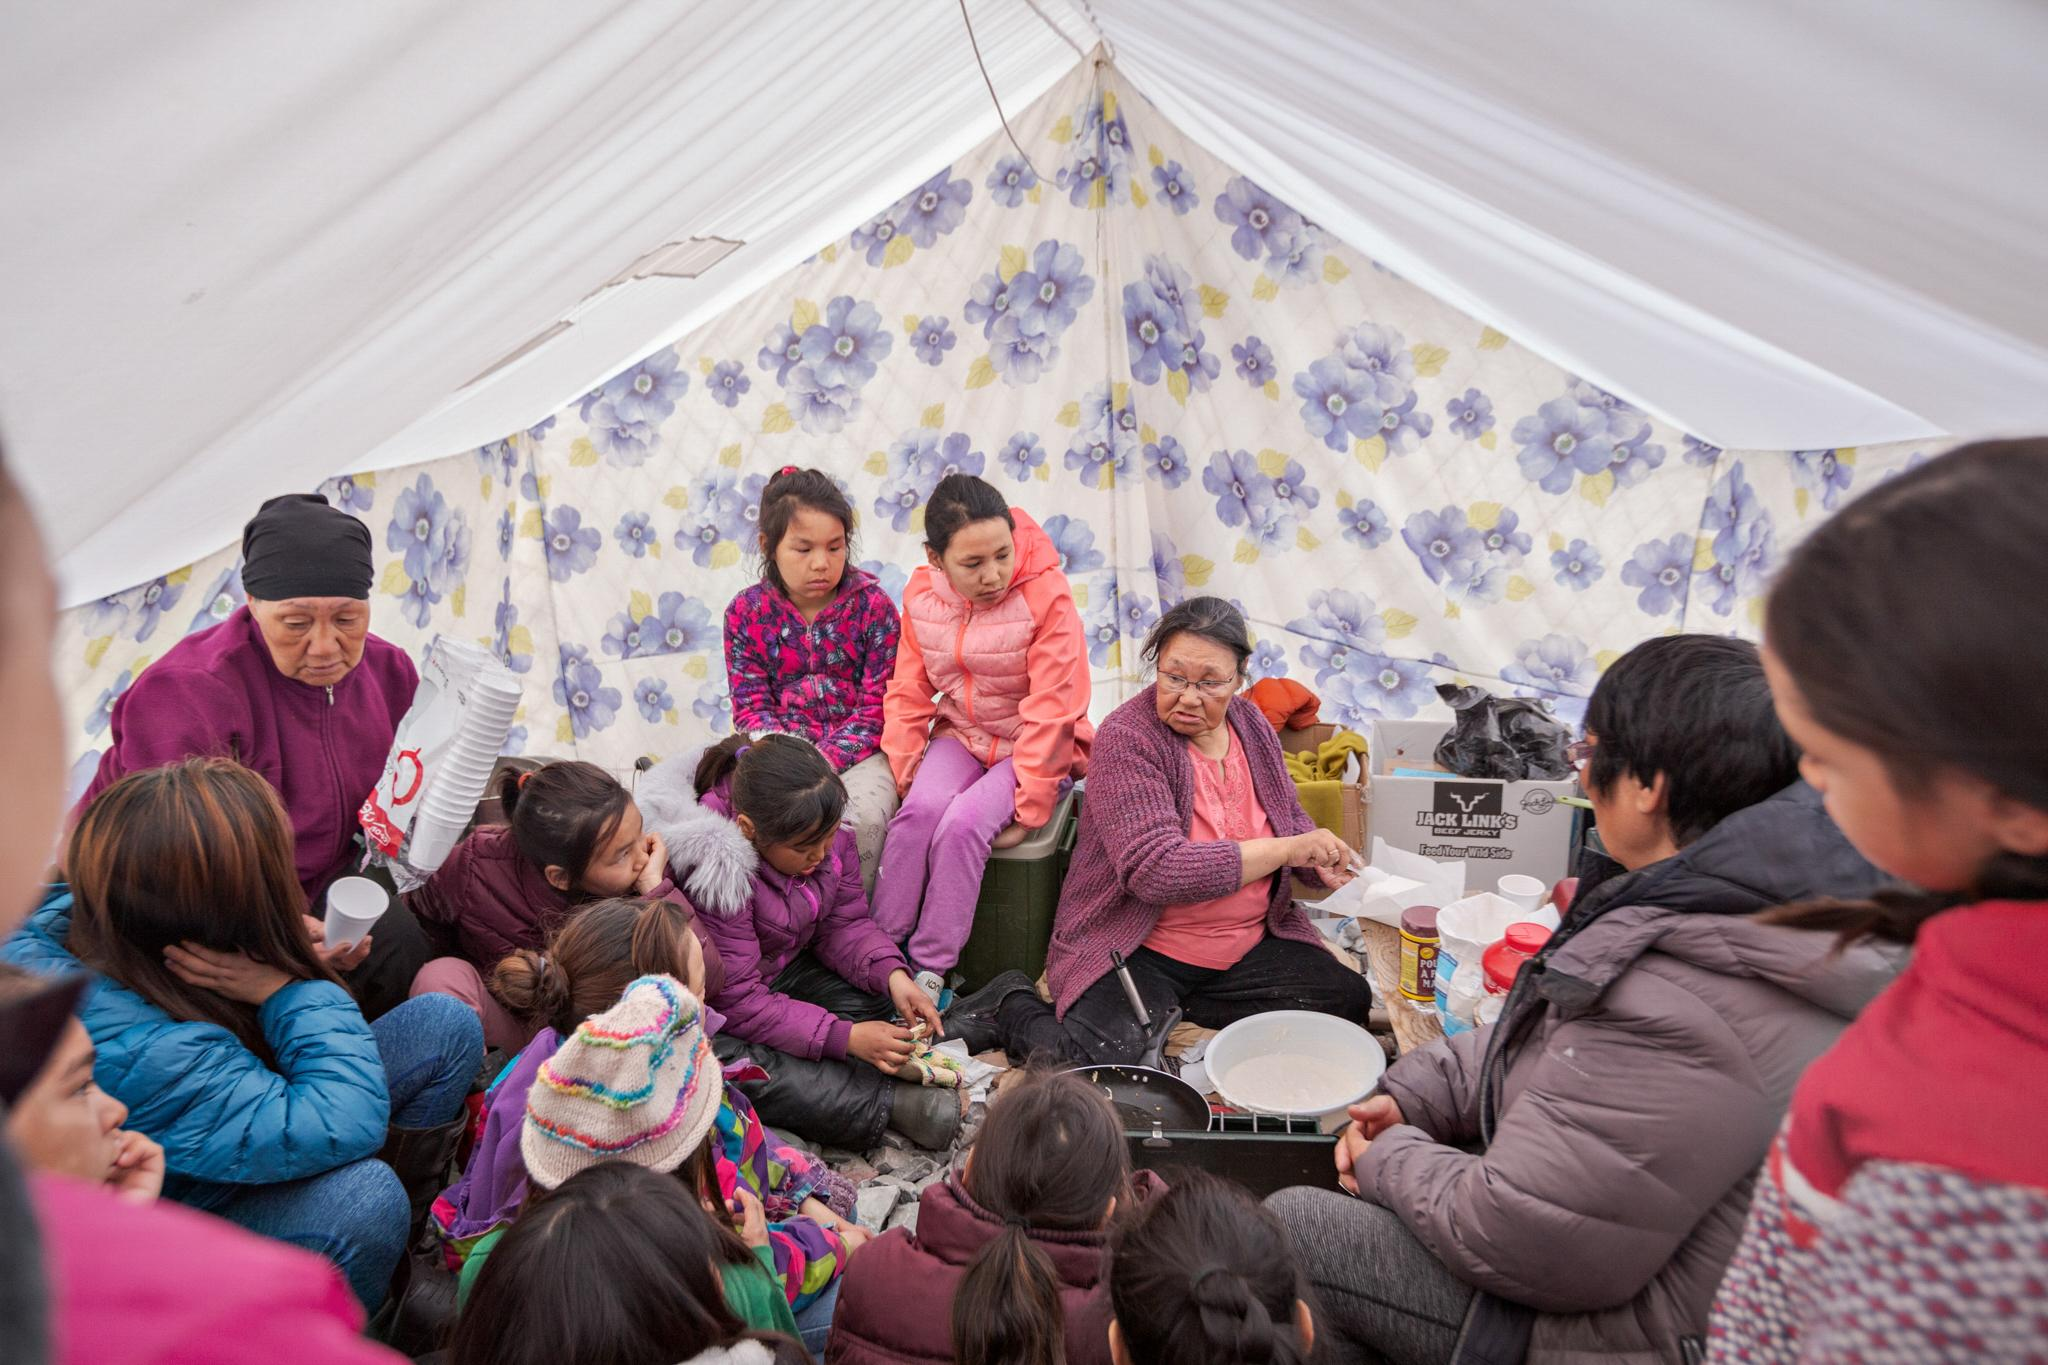 Tagoonak Qavavauq, an Inuit elder, teaches children how to make a bread called bannock on a school field trip. Ancestral knowledge about how to survive on the frigid land is disappearing with the elders. Many are determined to pass down traditions, particularly to children whose families no longer hunt or go camping. Learning how to live with limited resources is key to survival at a time when food insecurity and poor nutrition are increasing problems in Inuit communities.